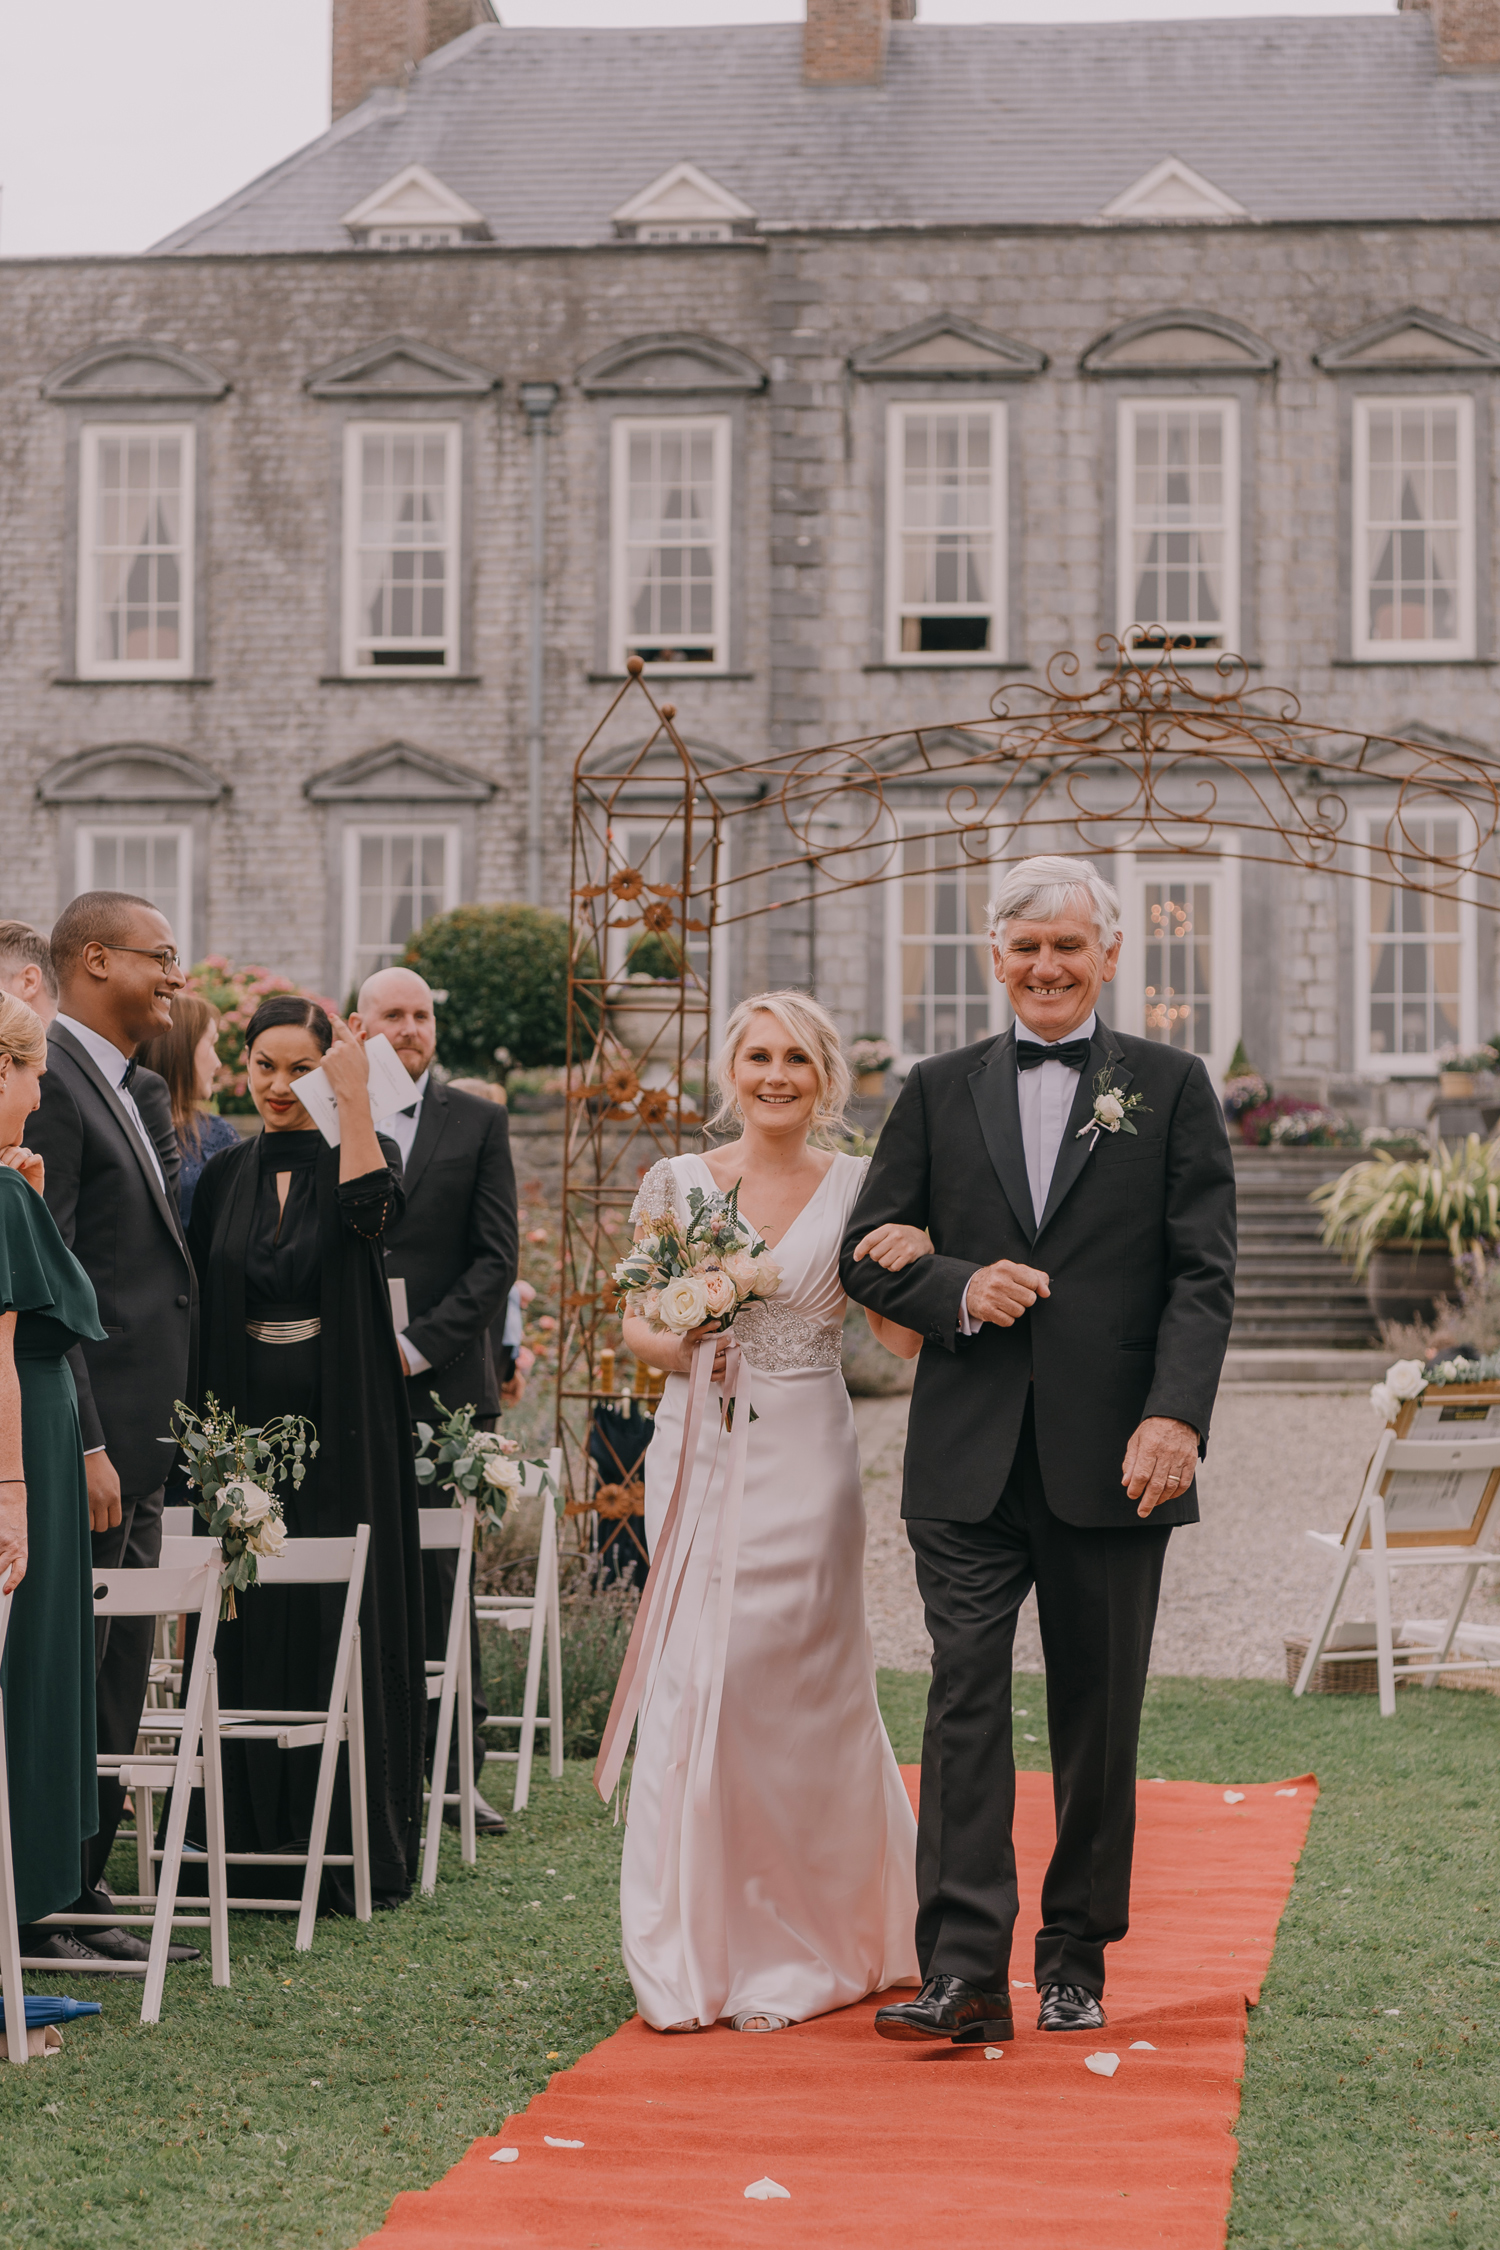 destination-wedding-photographers-castle-durrow-ireland100.jpg